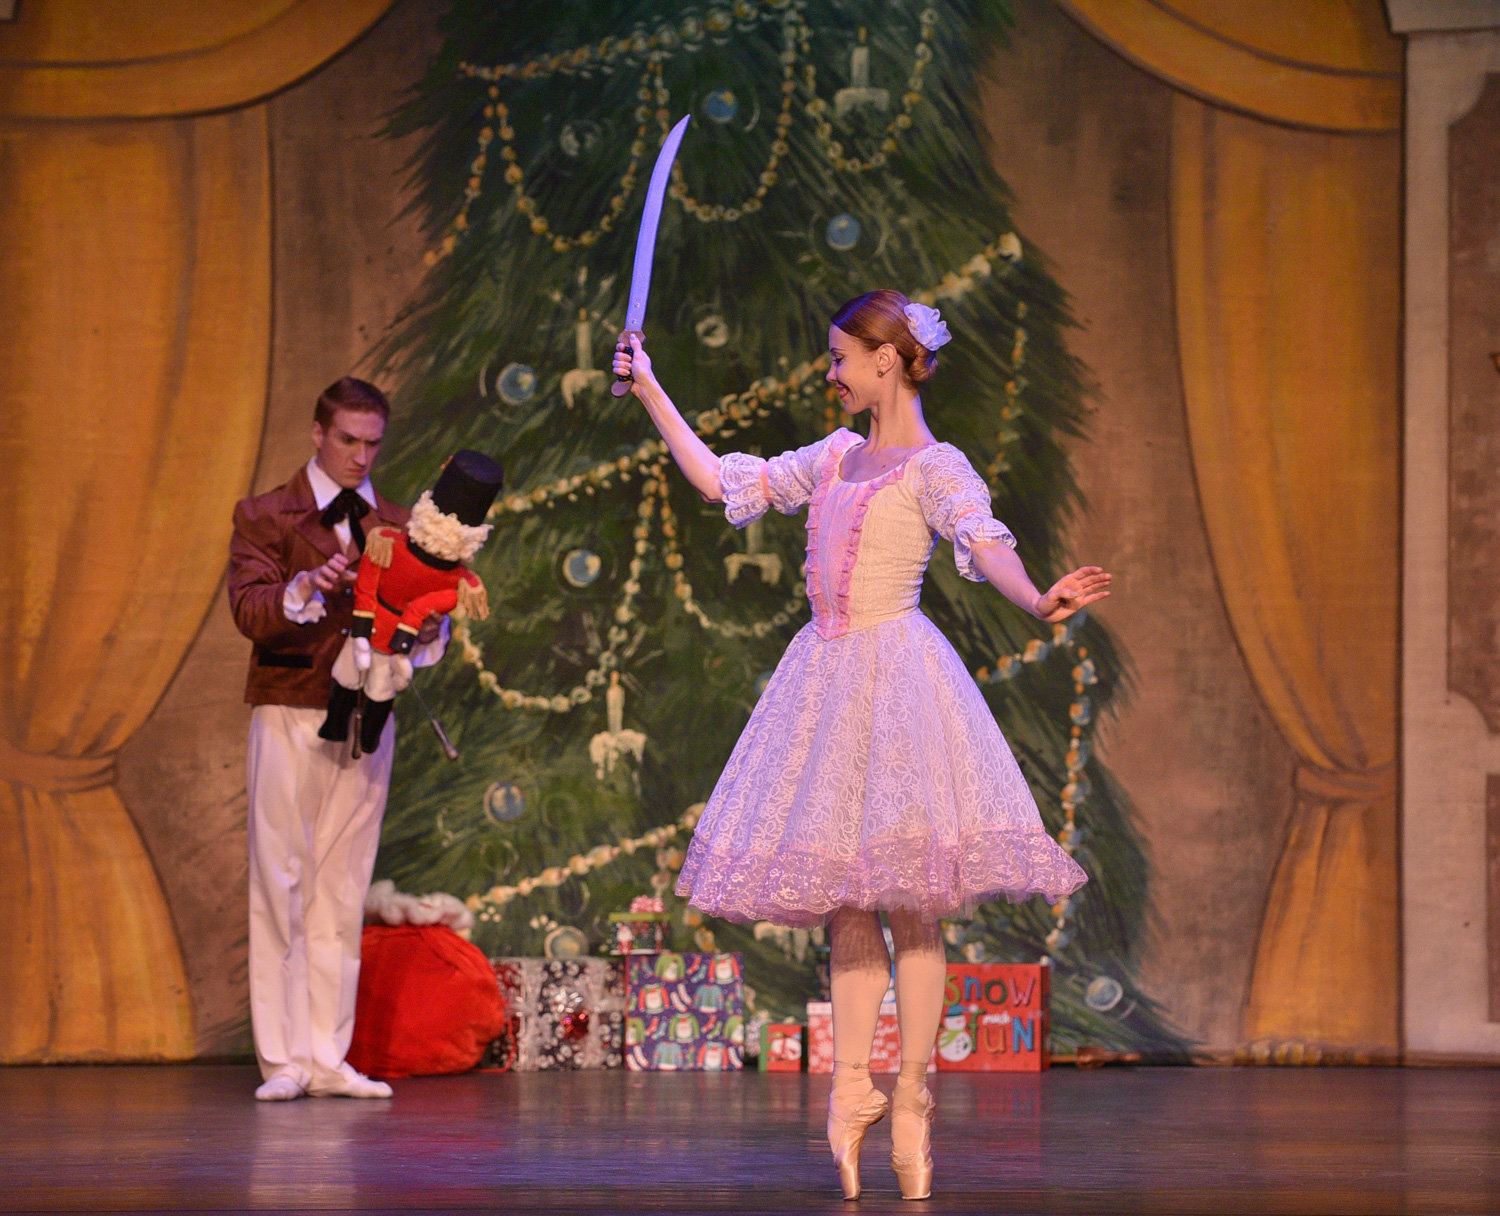 The National Ballet Theater of Odessa will bring 'The Nutcracker' to life at the Lehman Center for the Performing Arts on Dec. 1.